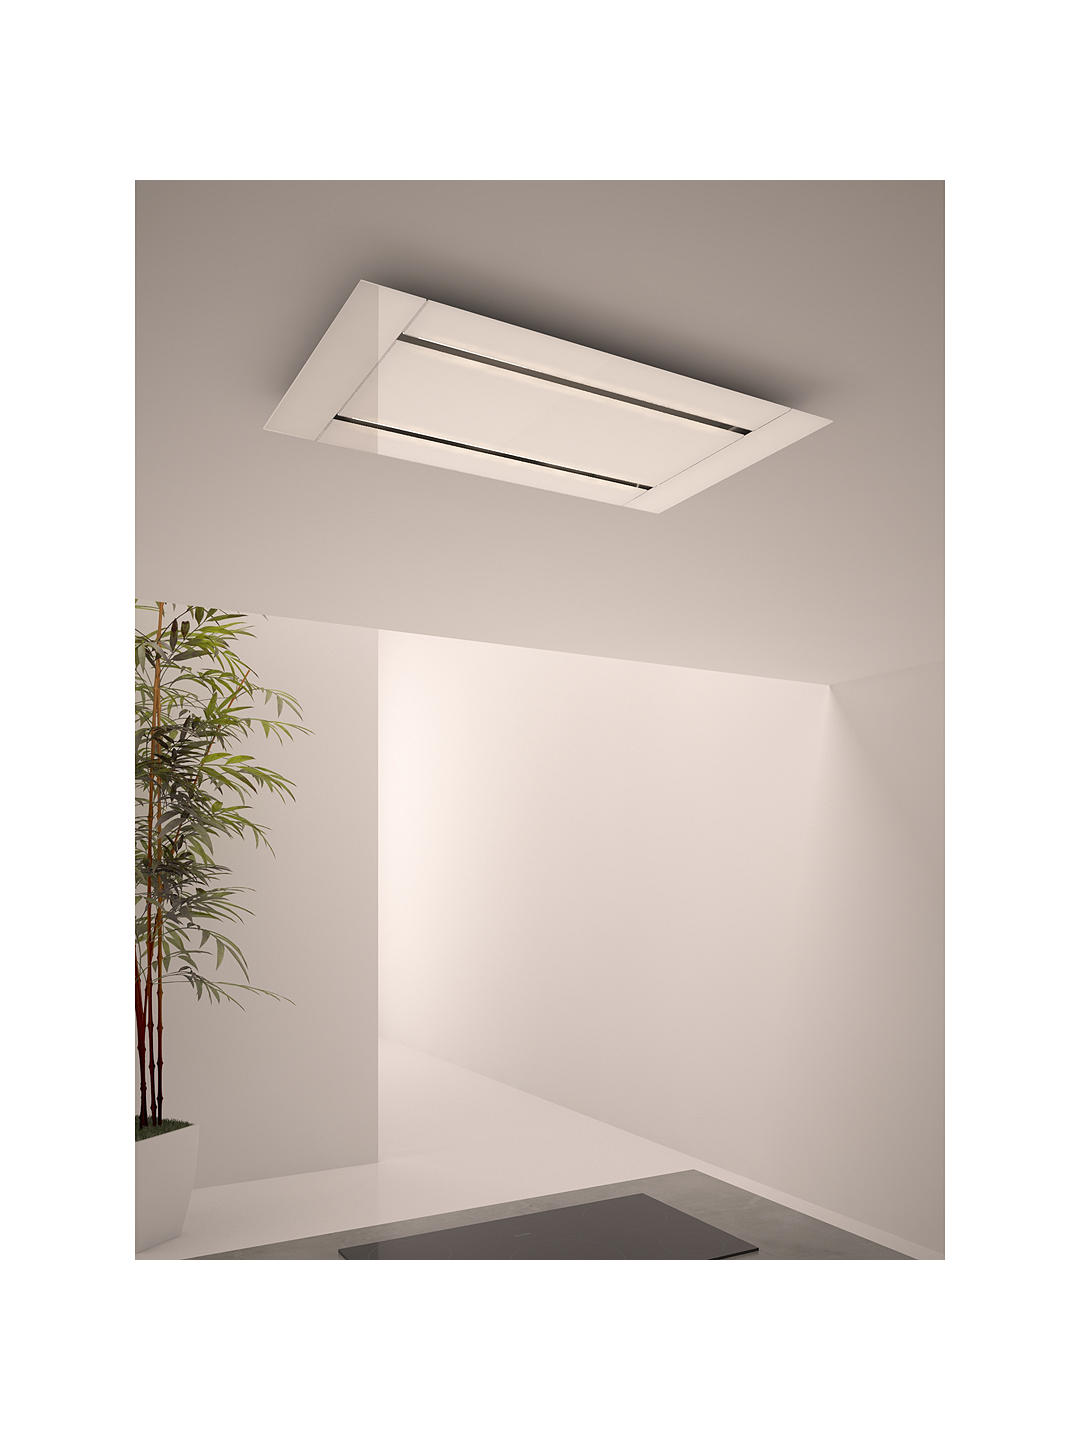 Buy John Lewis & Partners JLHDA918 Ceiling Cooker Hood, White Online at johnlewis.com